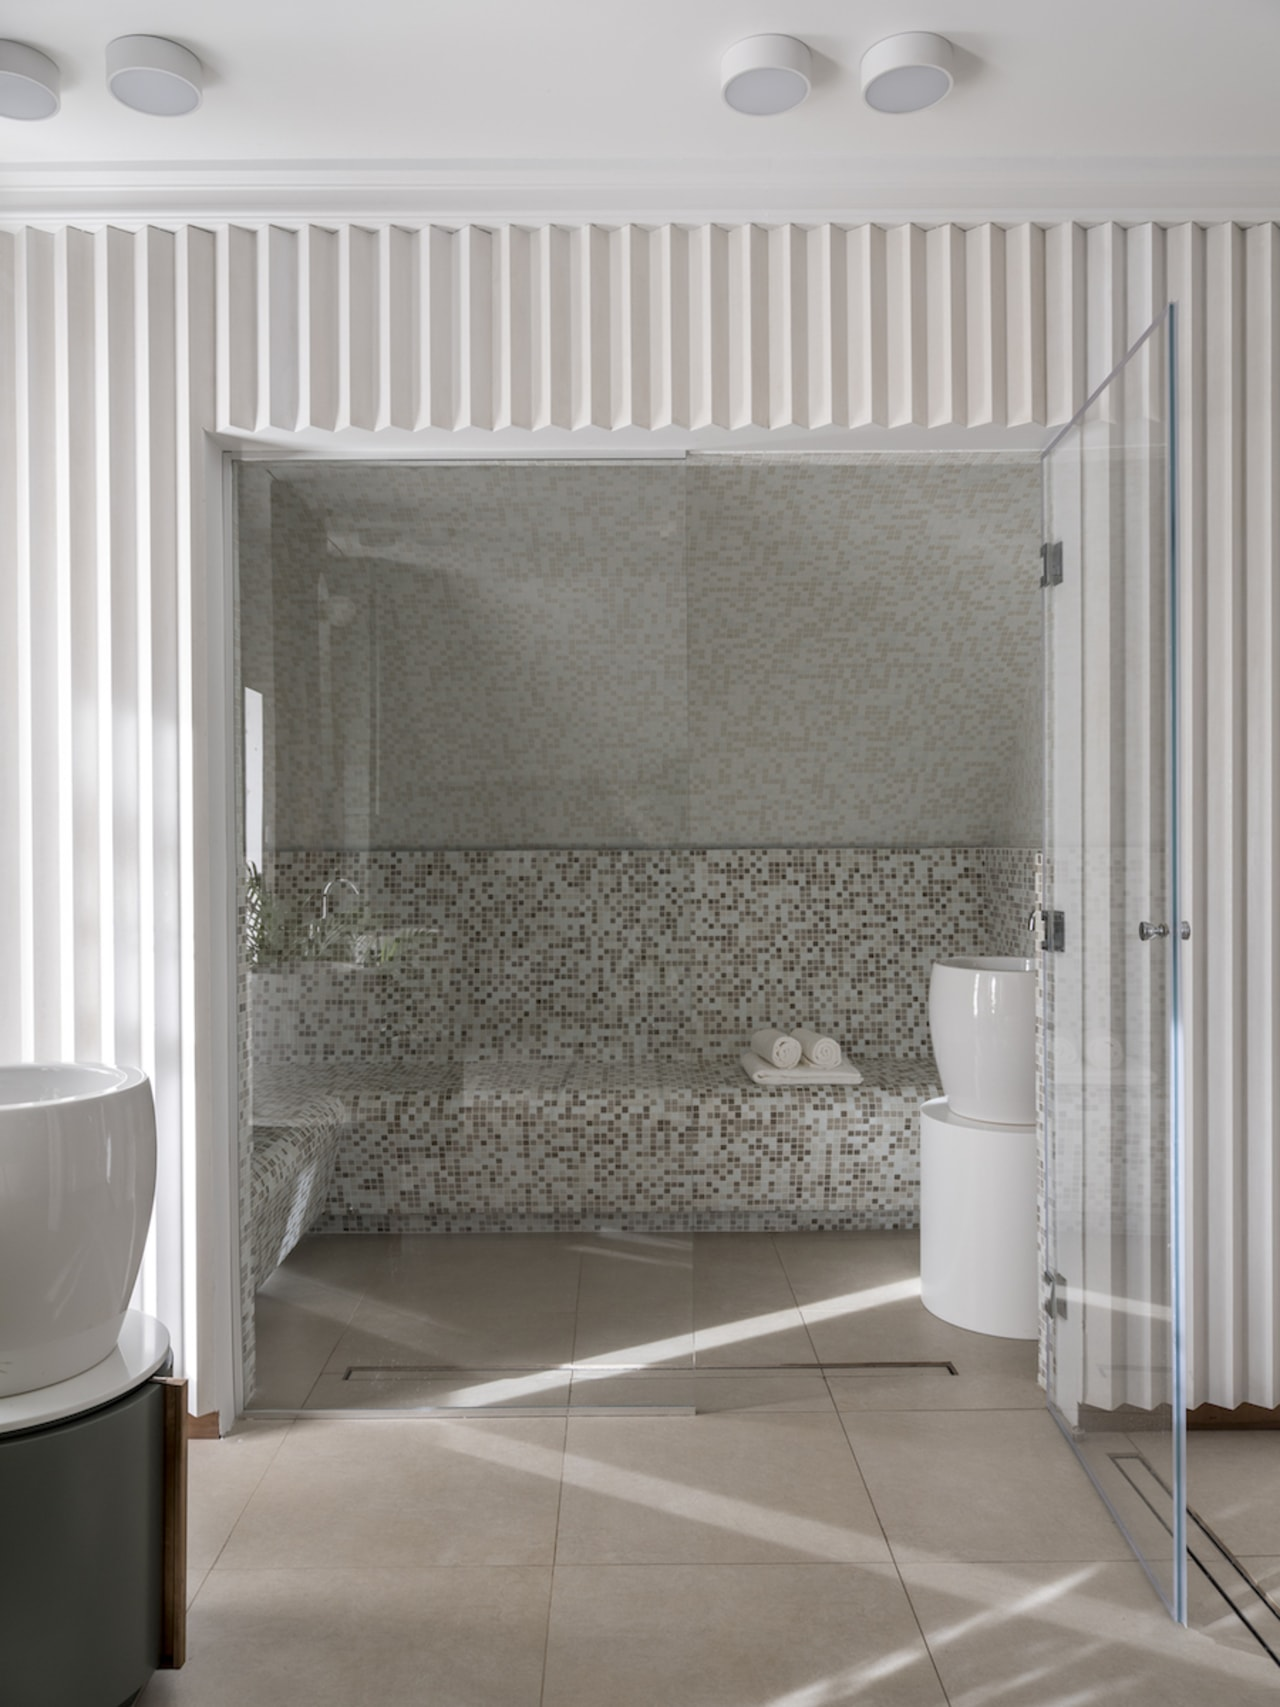 The most important element of the bathroom is architecture, bathroom, building, curtain, floor, flooring, furniture, house, interior design, product, property, room, silver, suite, tile, wall, white, window treatment, gray